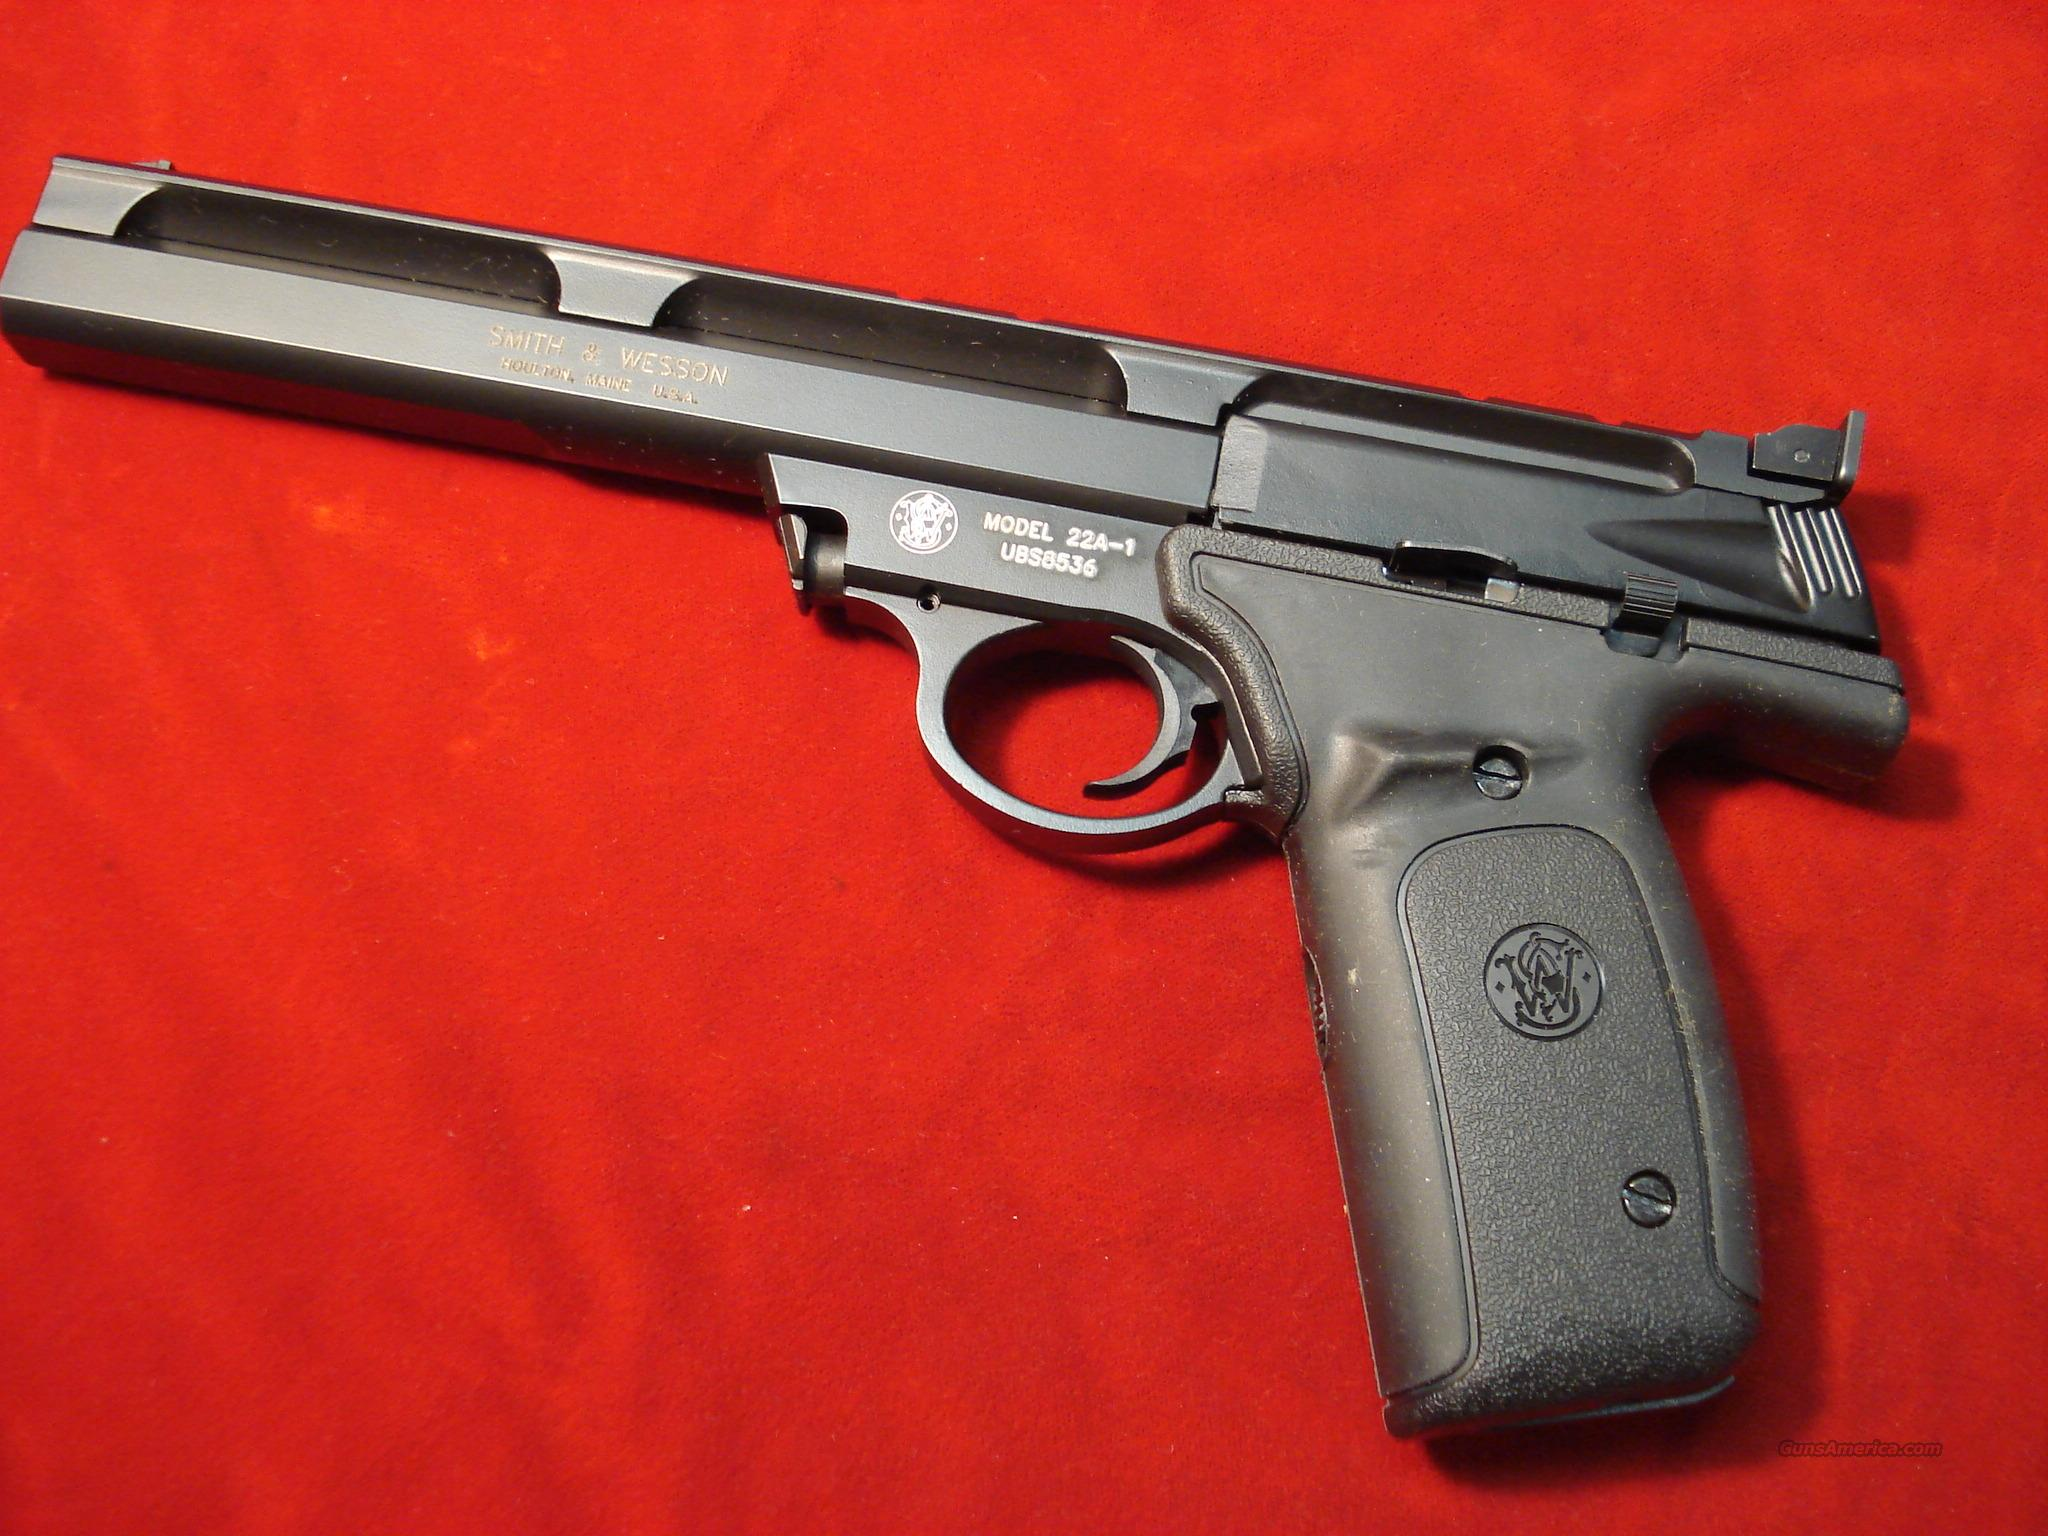 "SMITH AND WESSON 22A 22LR. 7"" NEW  Guns > Pistols > Smith & Wesson Pistols - Autos > Alloy Frame"